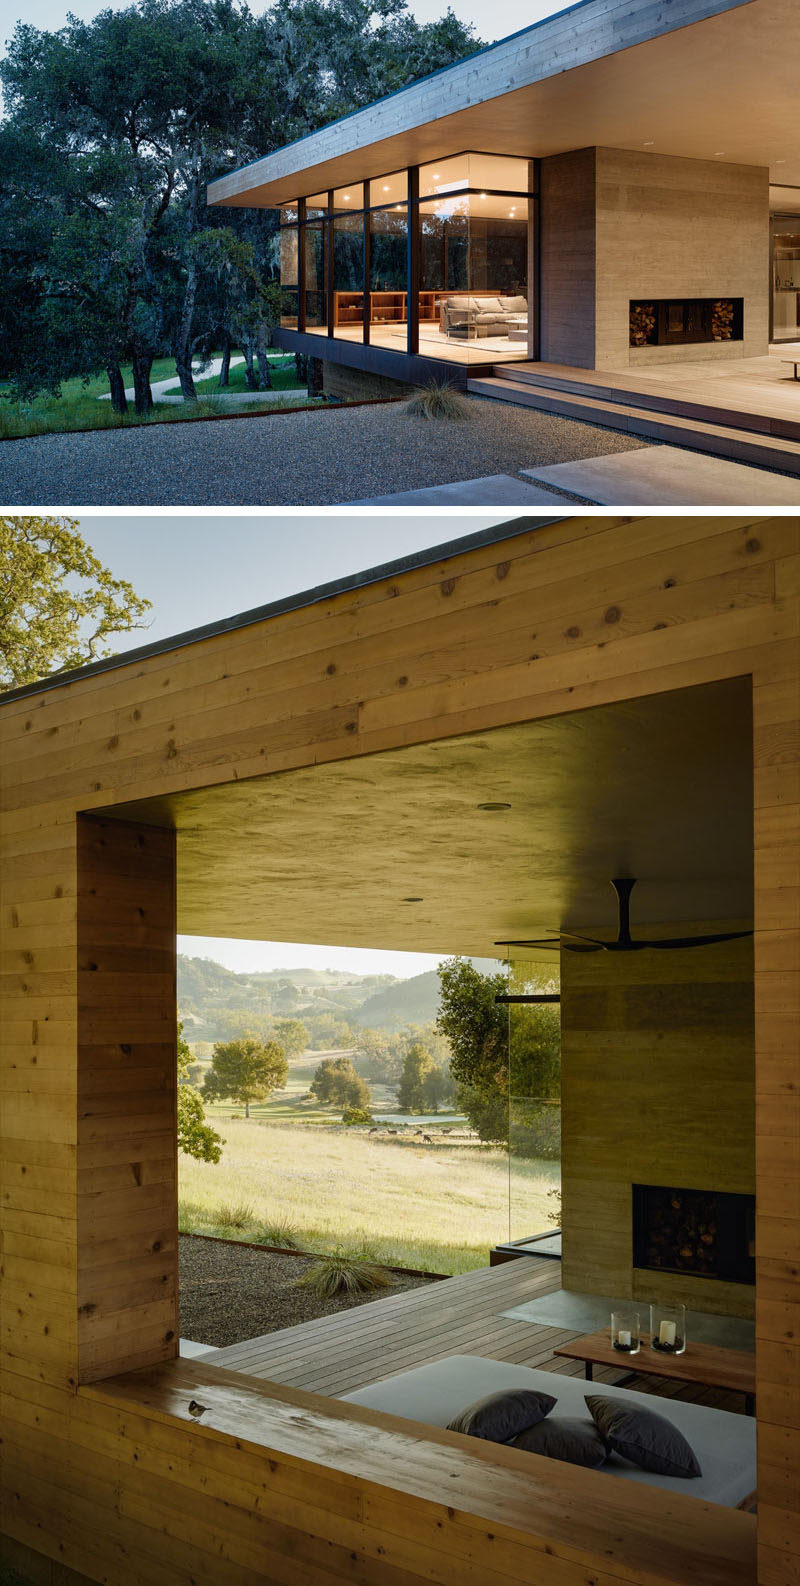 This outdoor fireplace has a concrete surround and space for firewood storage.